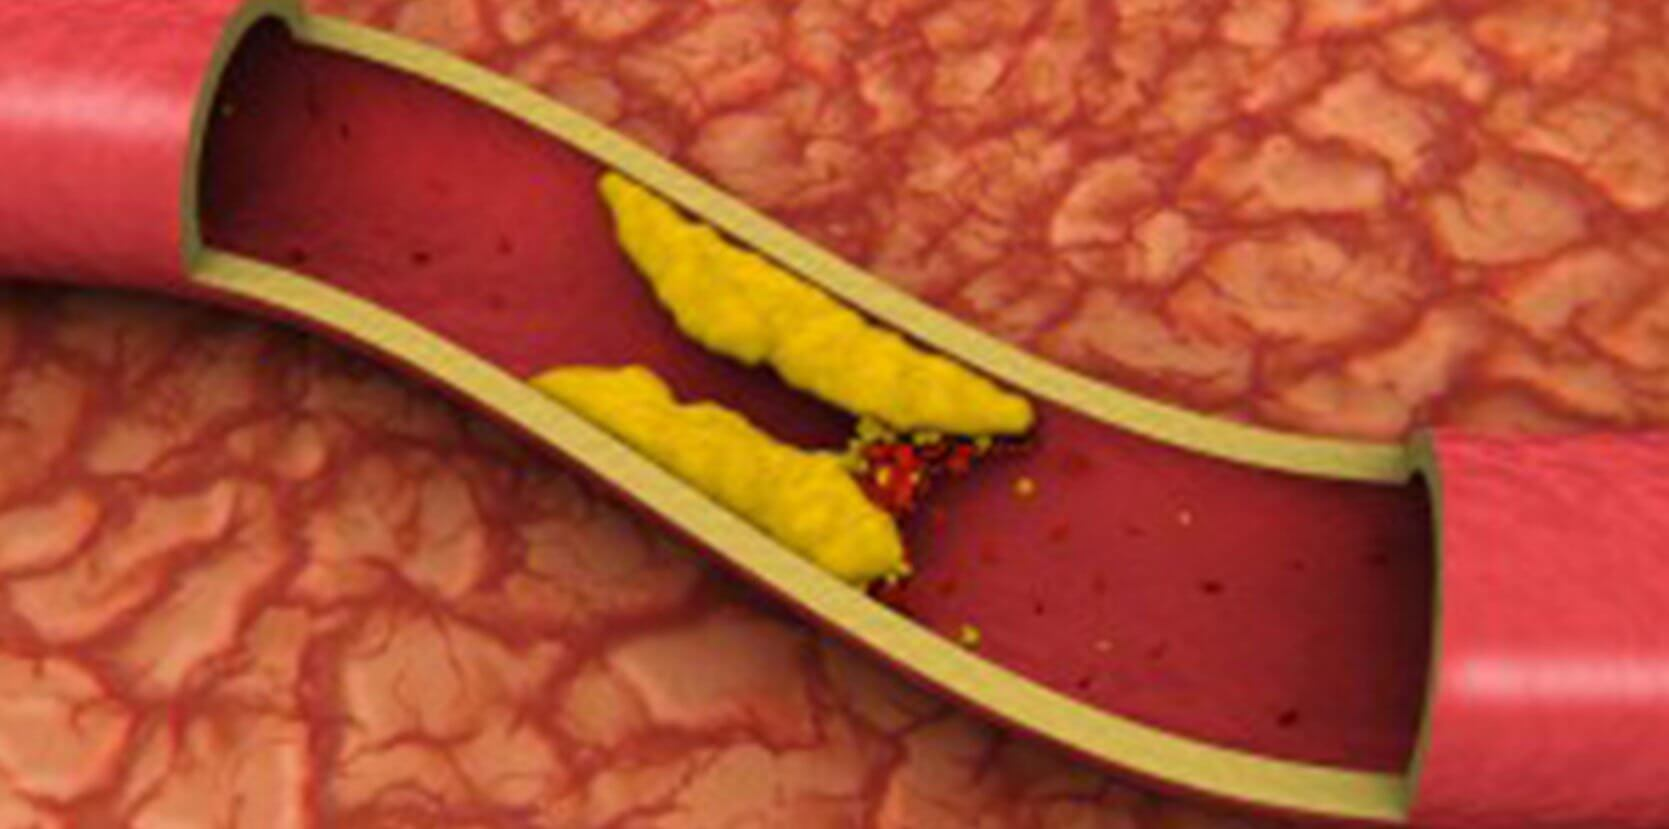 Know about Atherectomy